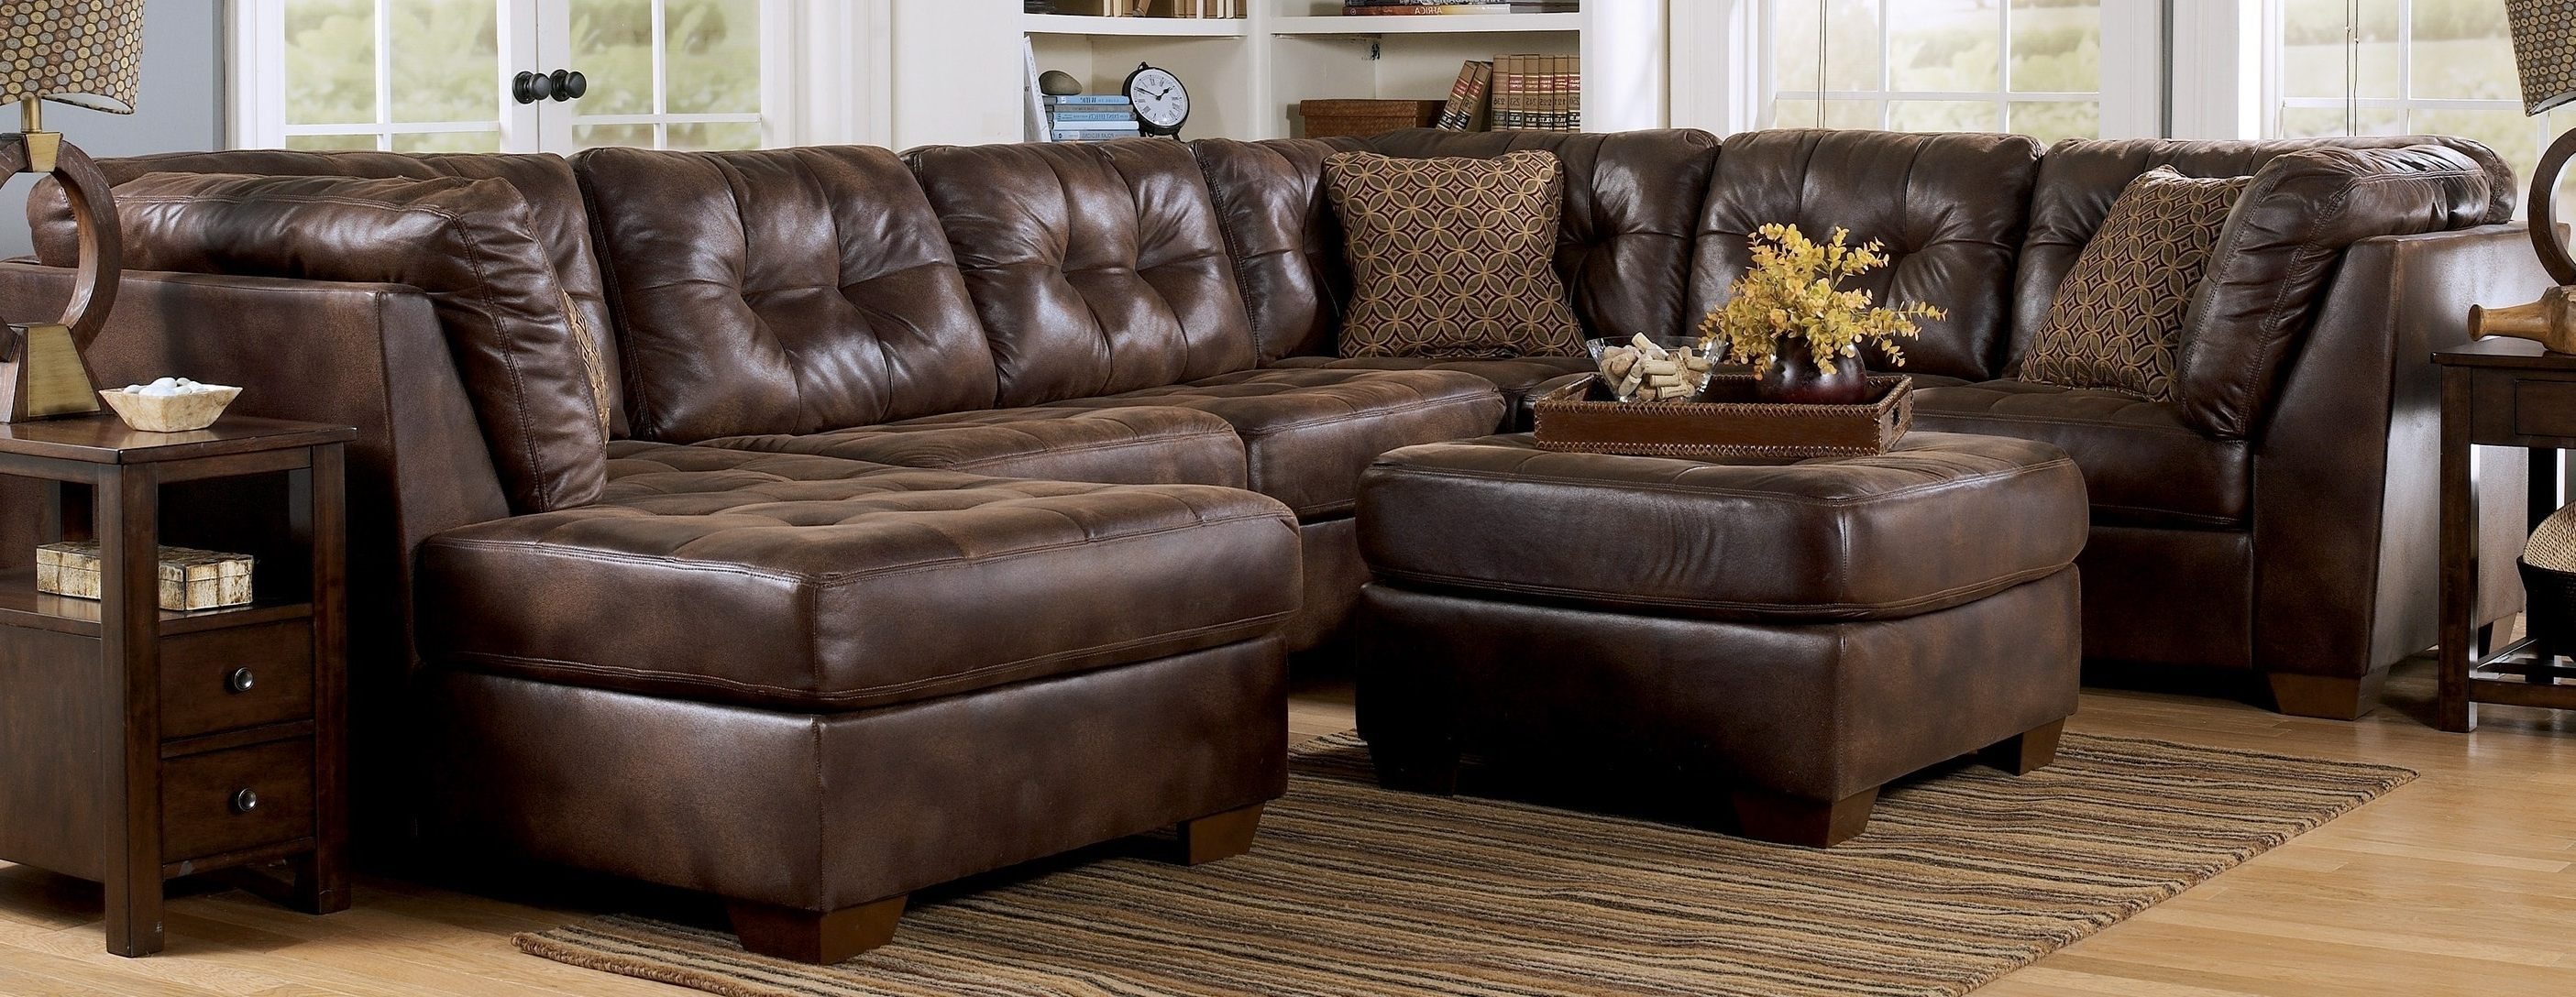 Leather Sectional Sleeper Sofa With Chaise – Tourdecarroll For Best And Newest Sectional Sofas Under  (View 18 of 20)